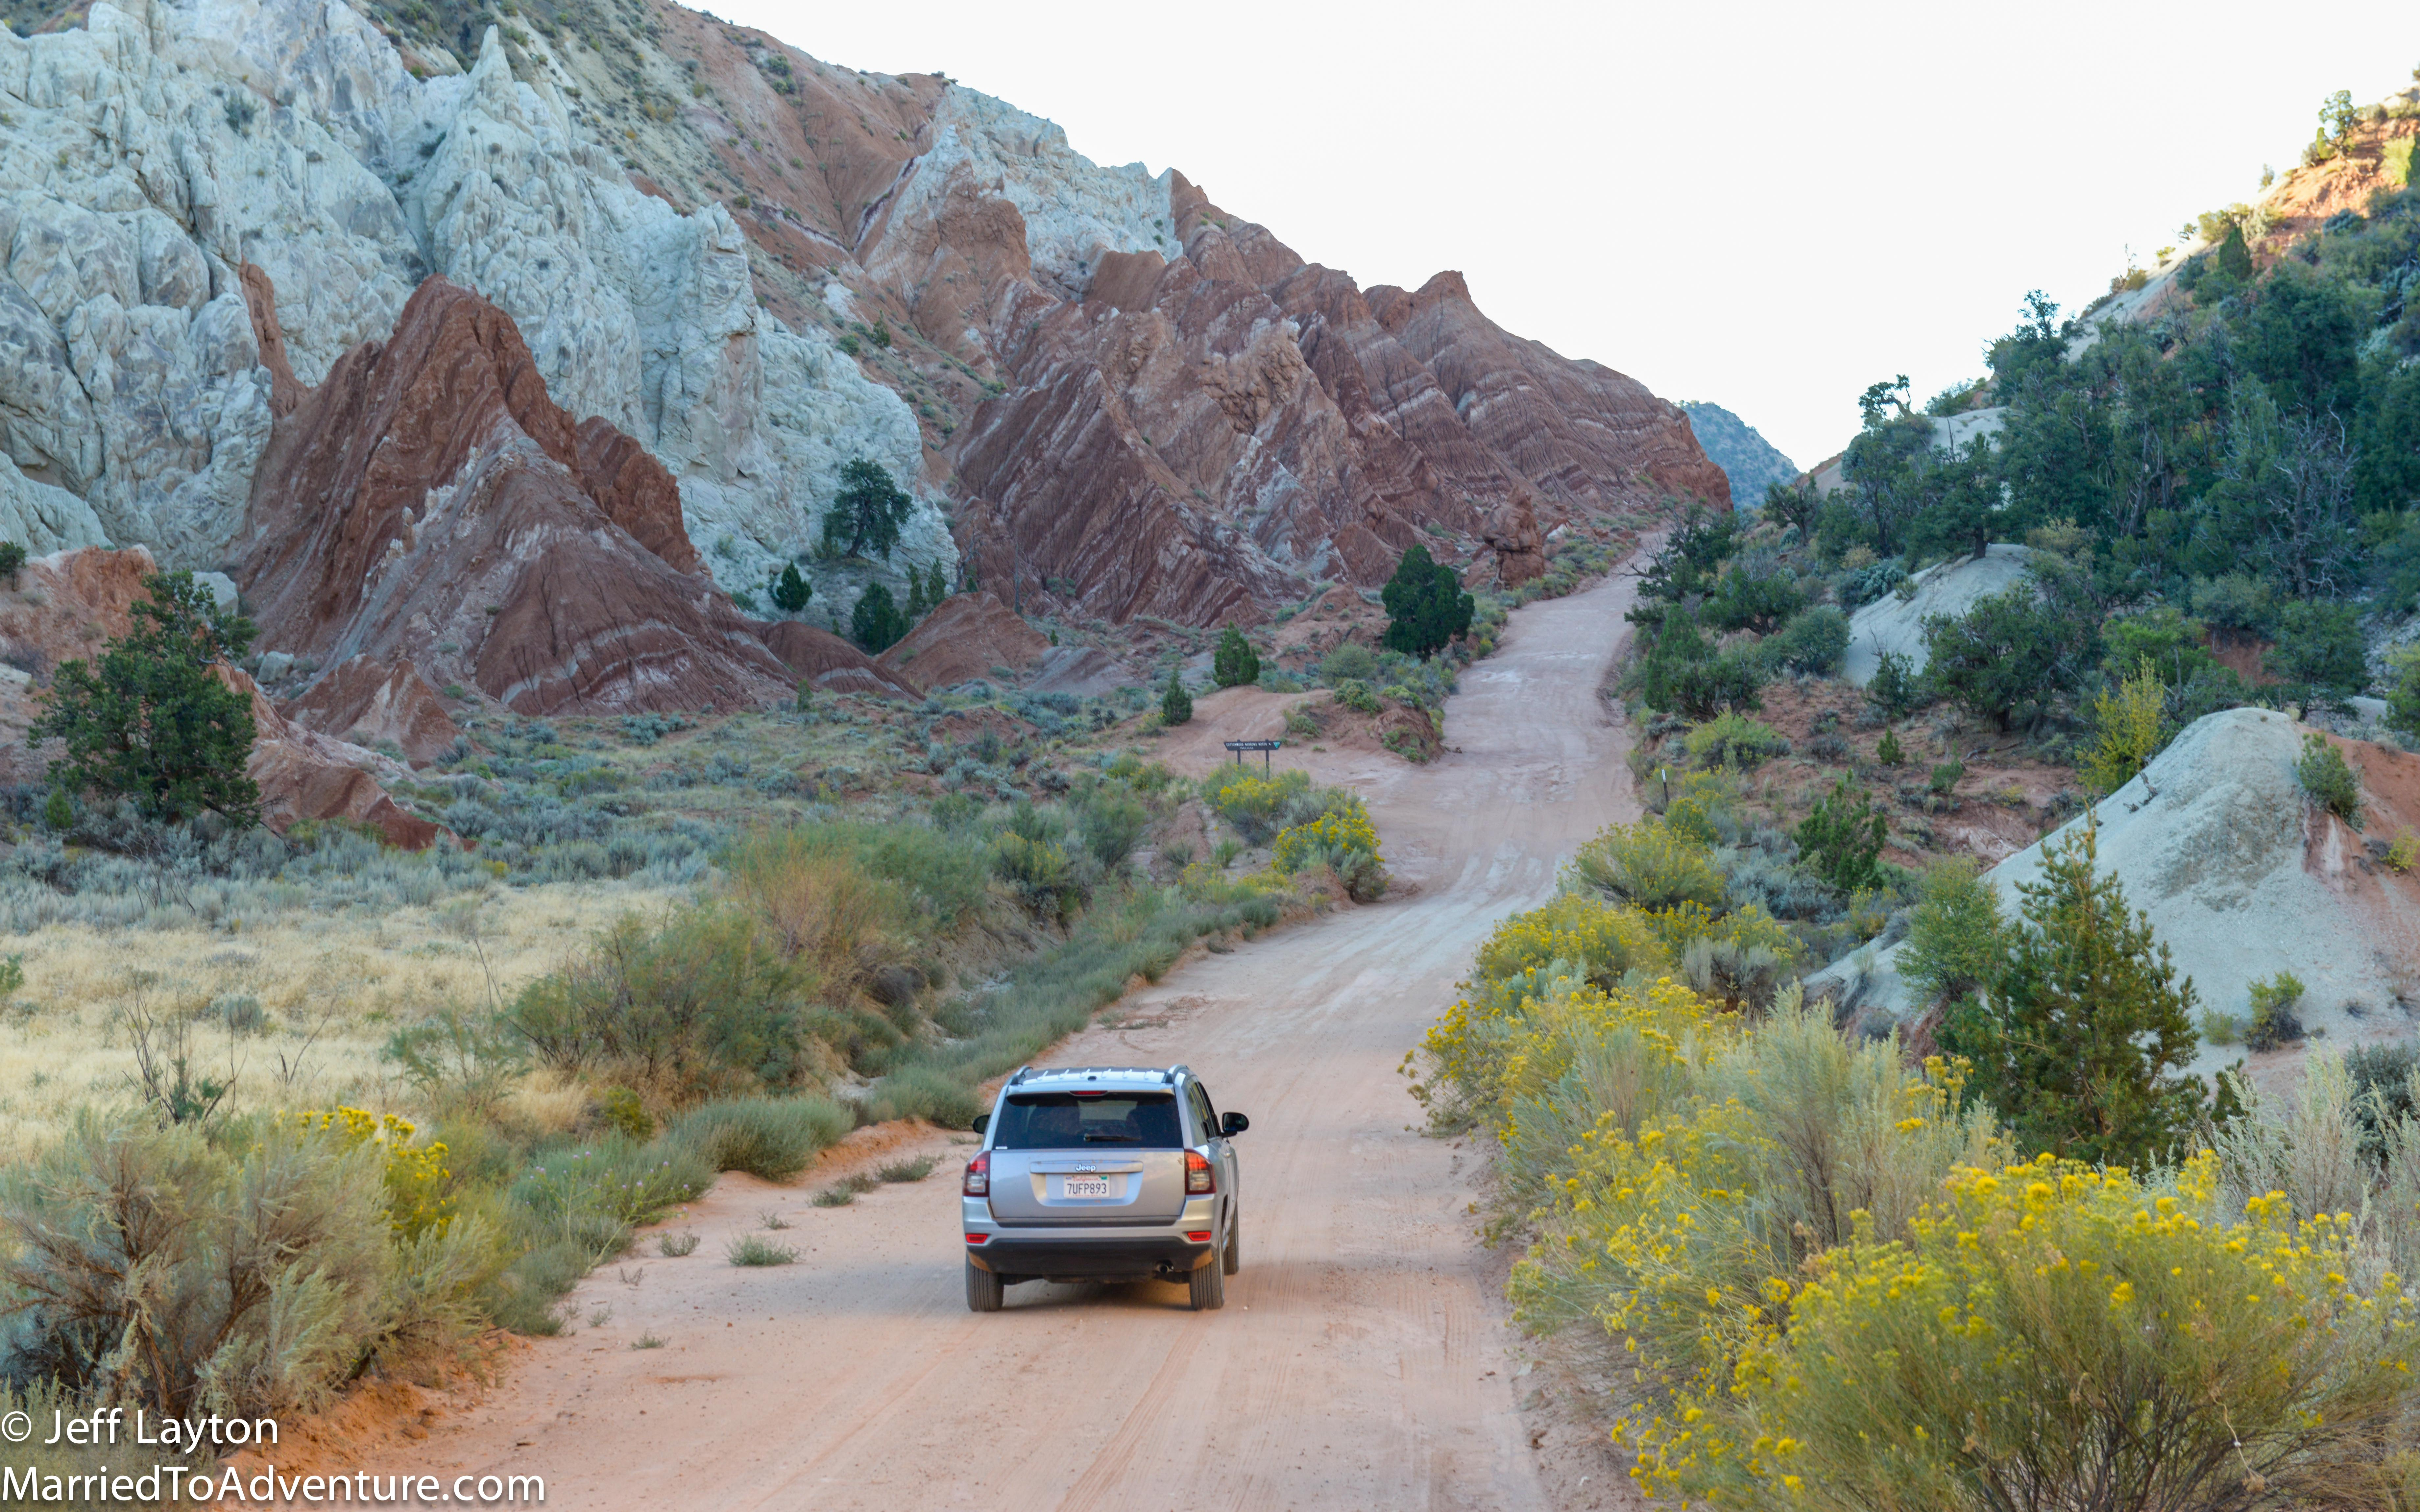 Driving the Cottonwood Canyon on the way to the Buckskin Gulch.